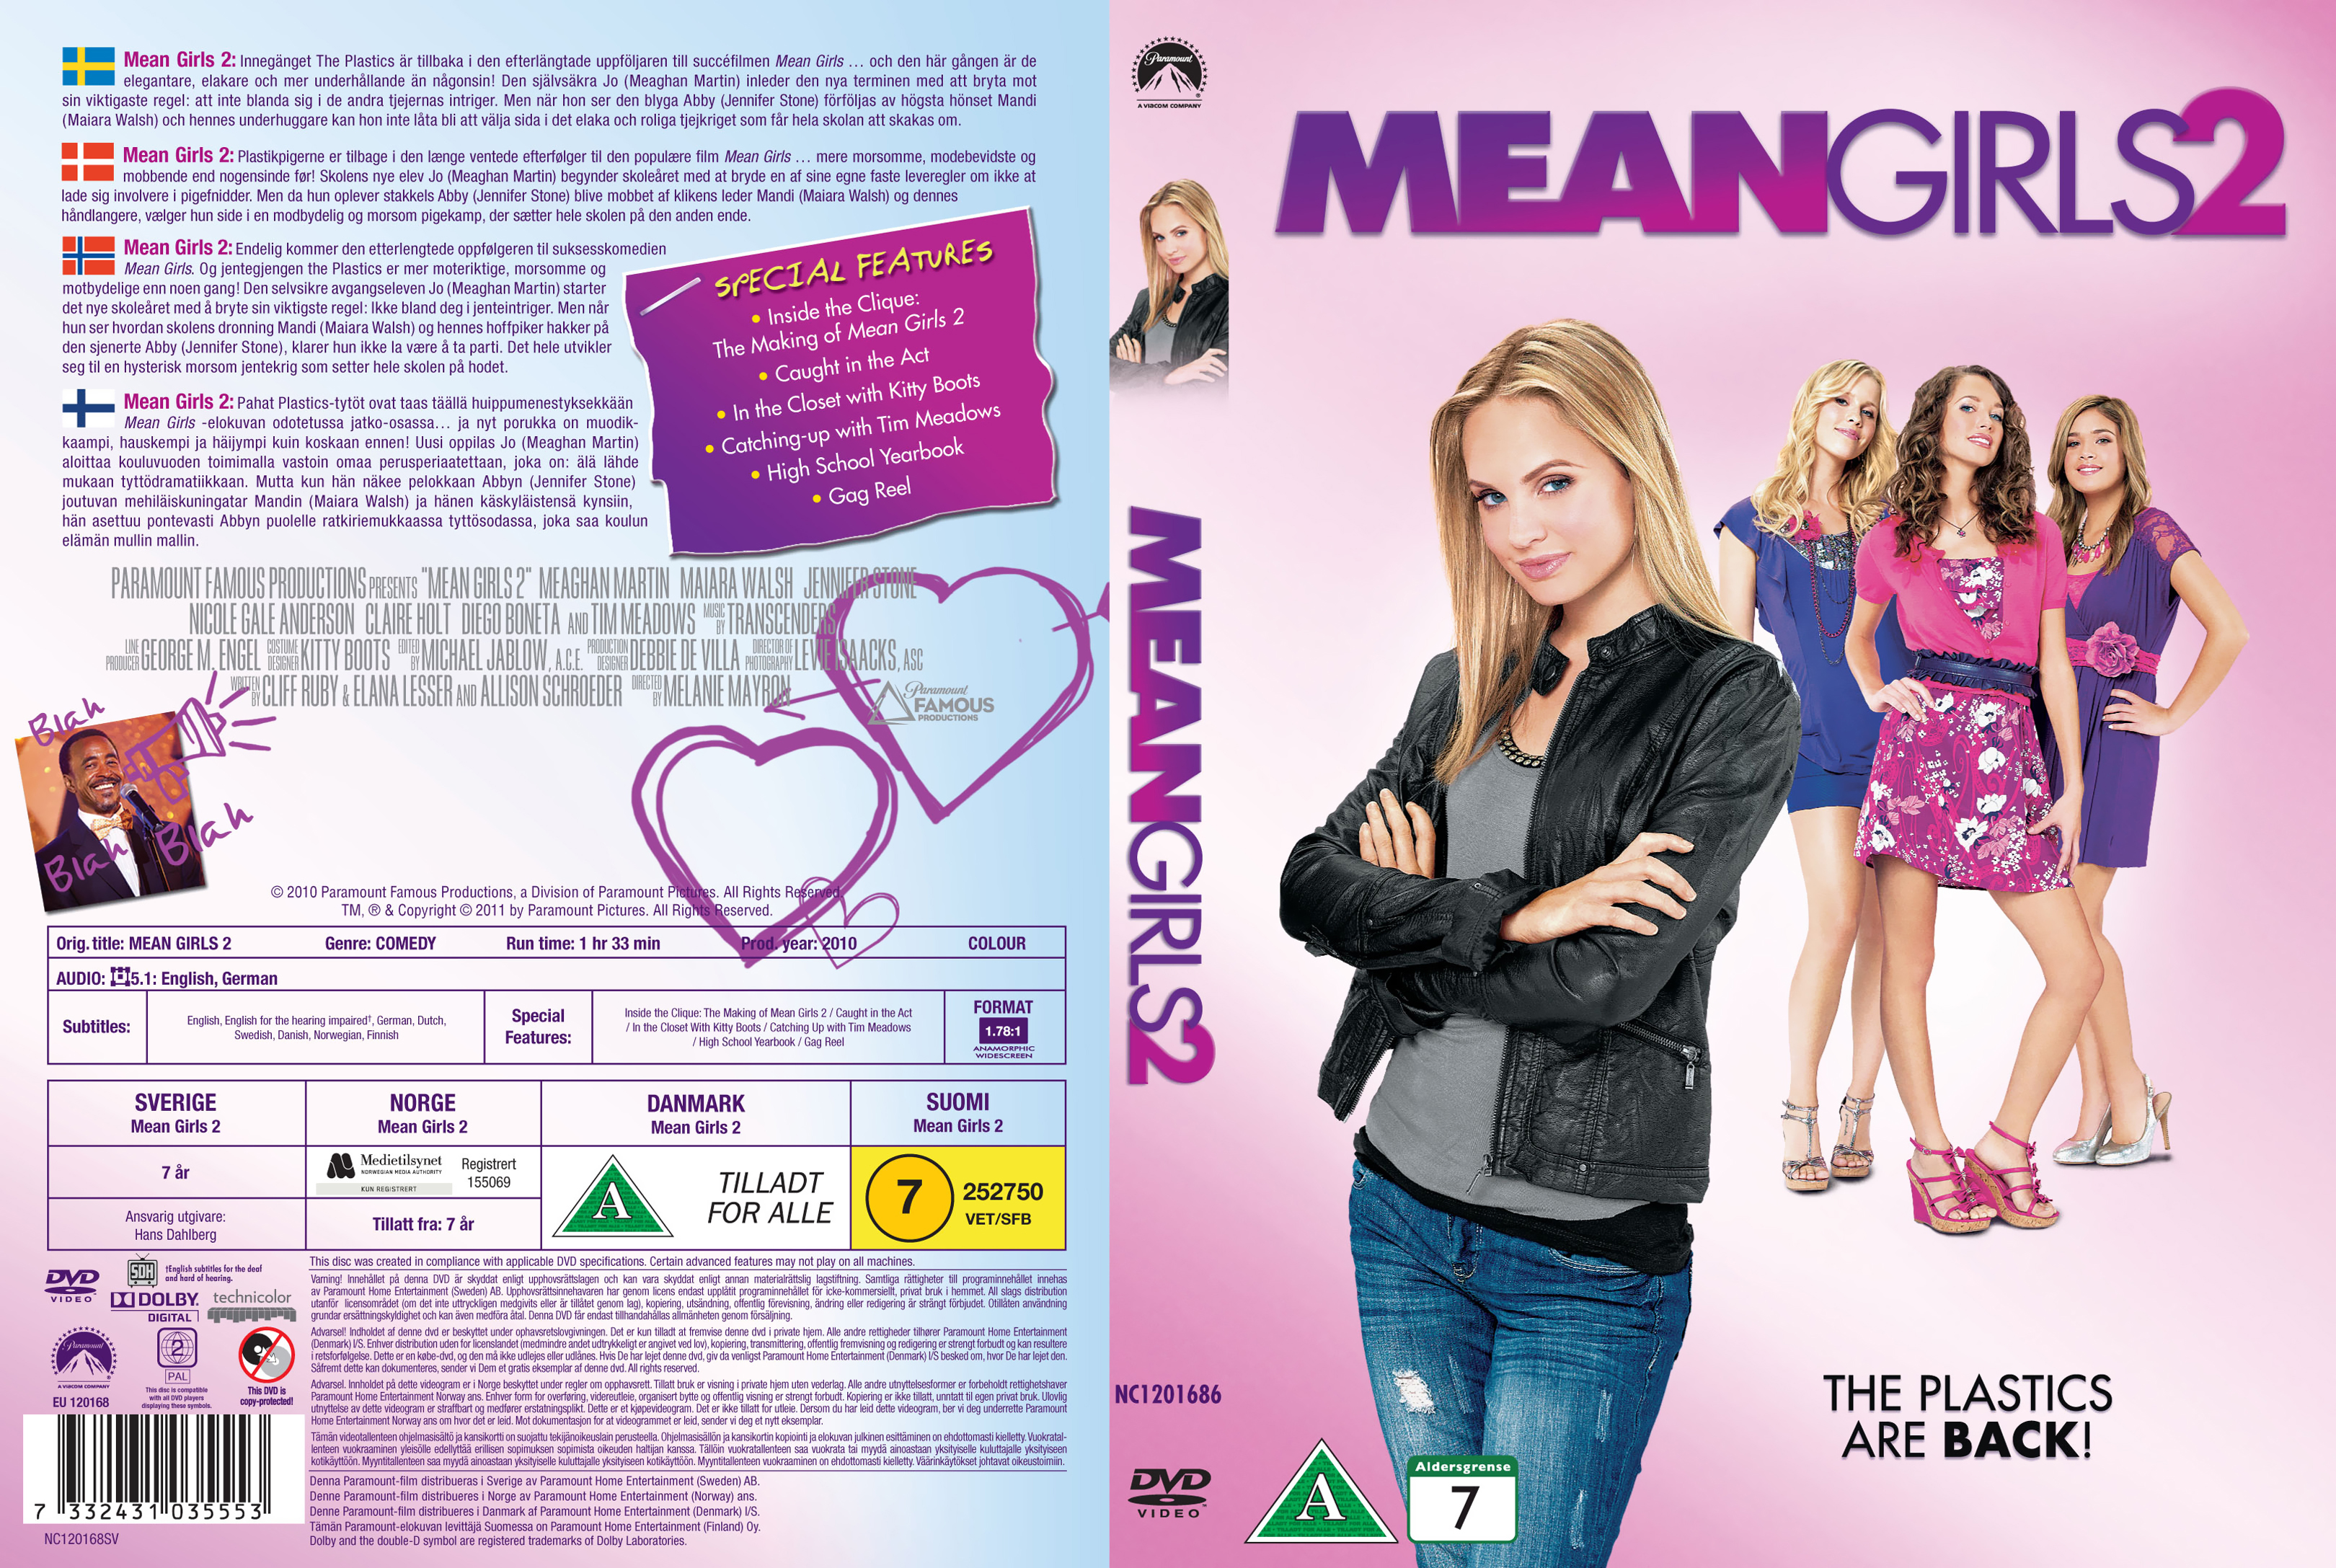 COVERS BOX SK ::: Mean Girls 2 - Nordic (2011) - high